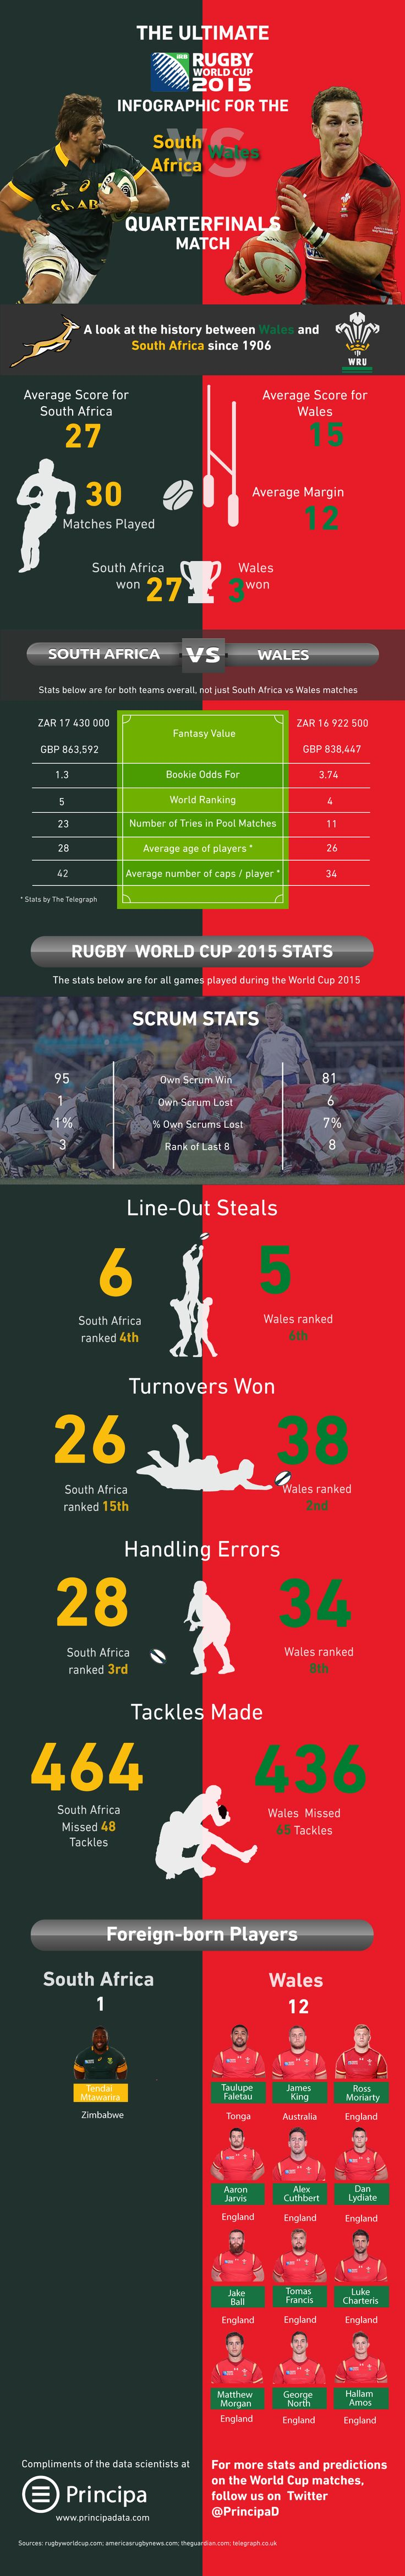 South Africa vs Wales Infographic- great overview of the teams history playing against each other